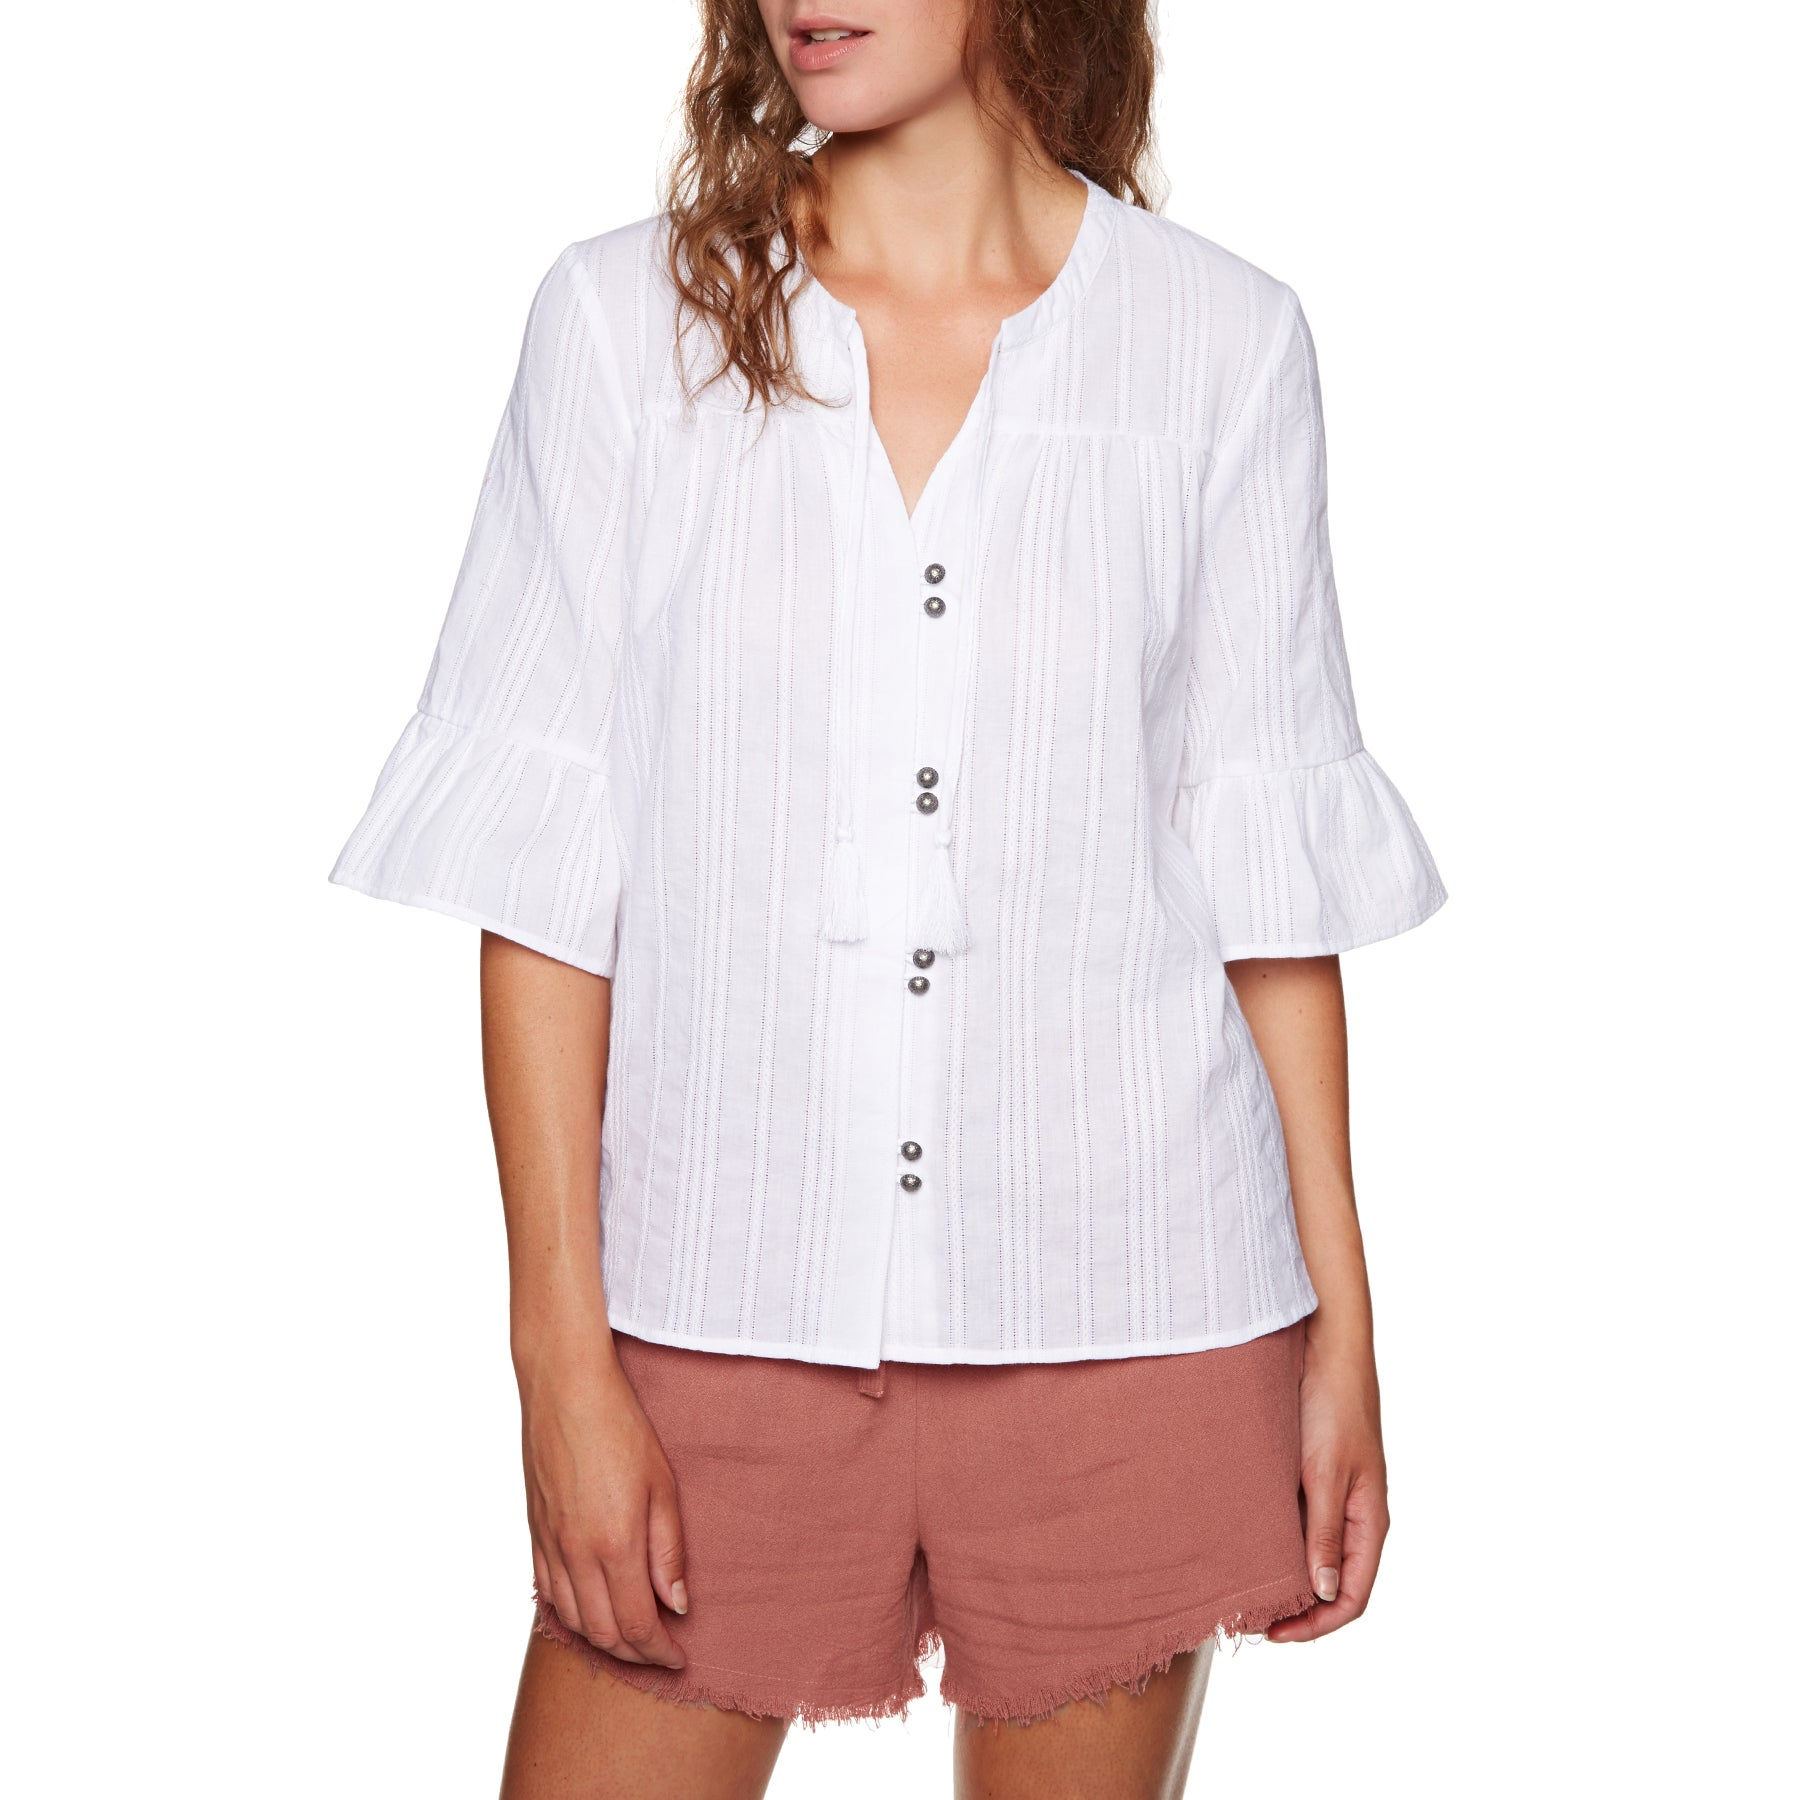 SWELL Faraway Smock Blouse Womens Top - White